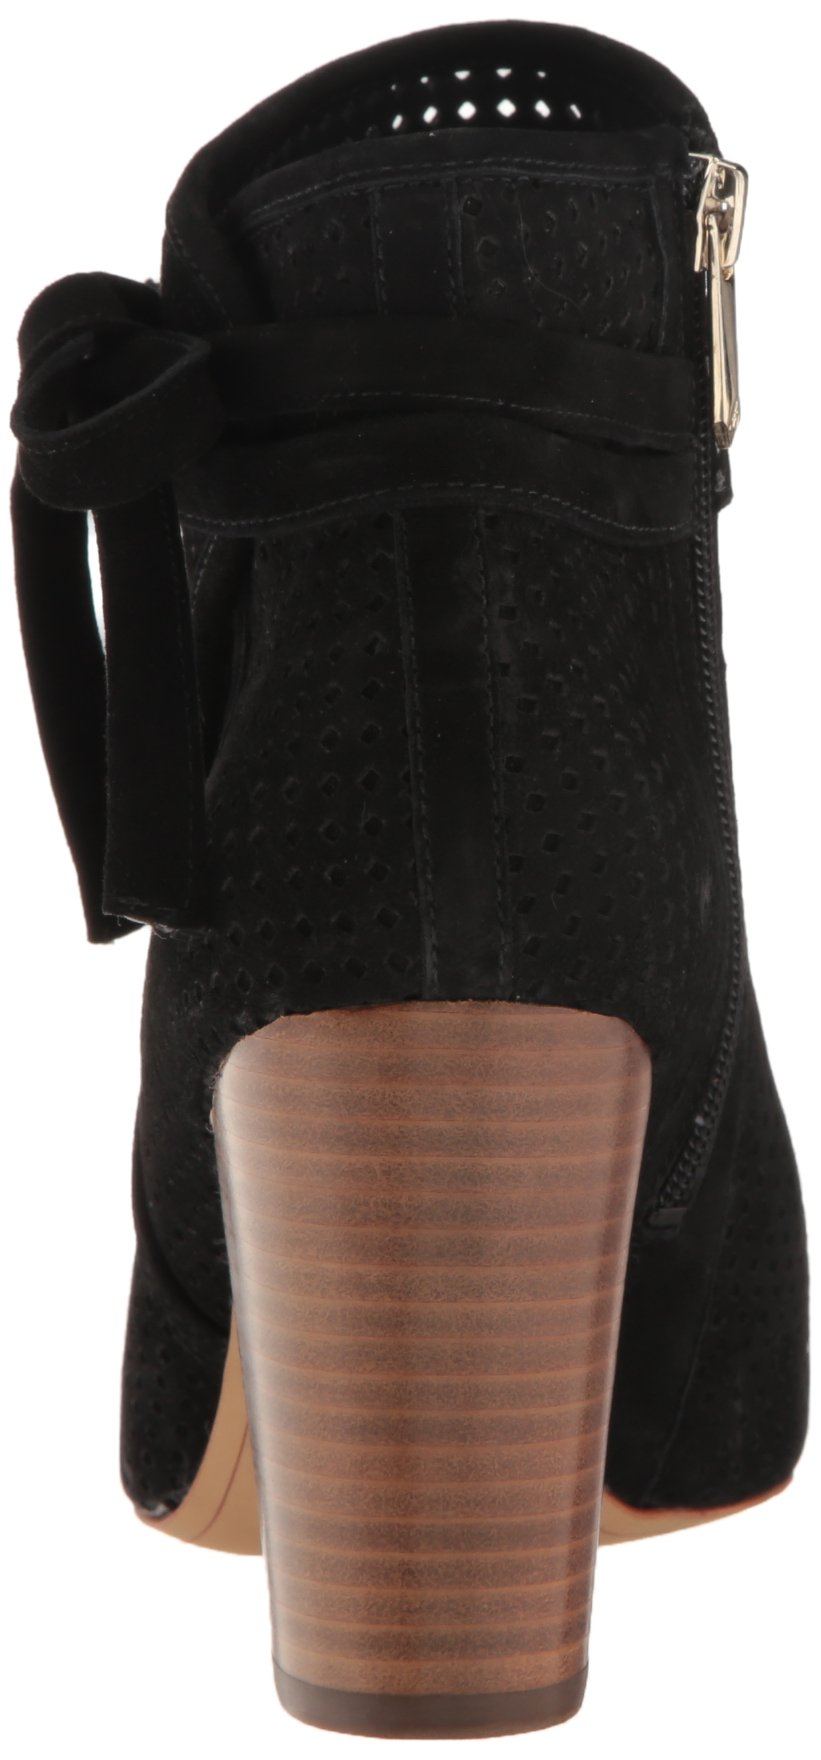 Sam Edelman Women's Ellery, Black, 8.5 M US by Sam Edelman (Image #2)